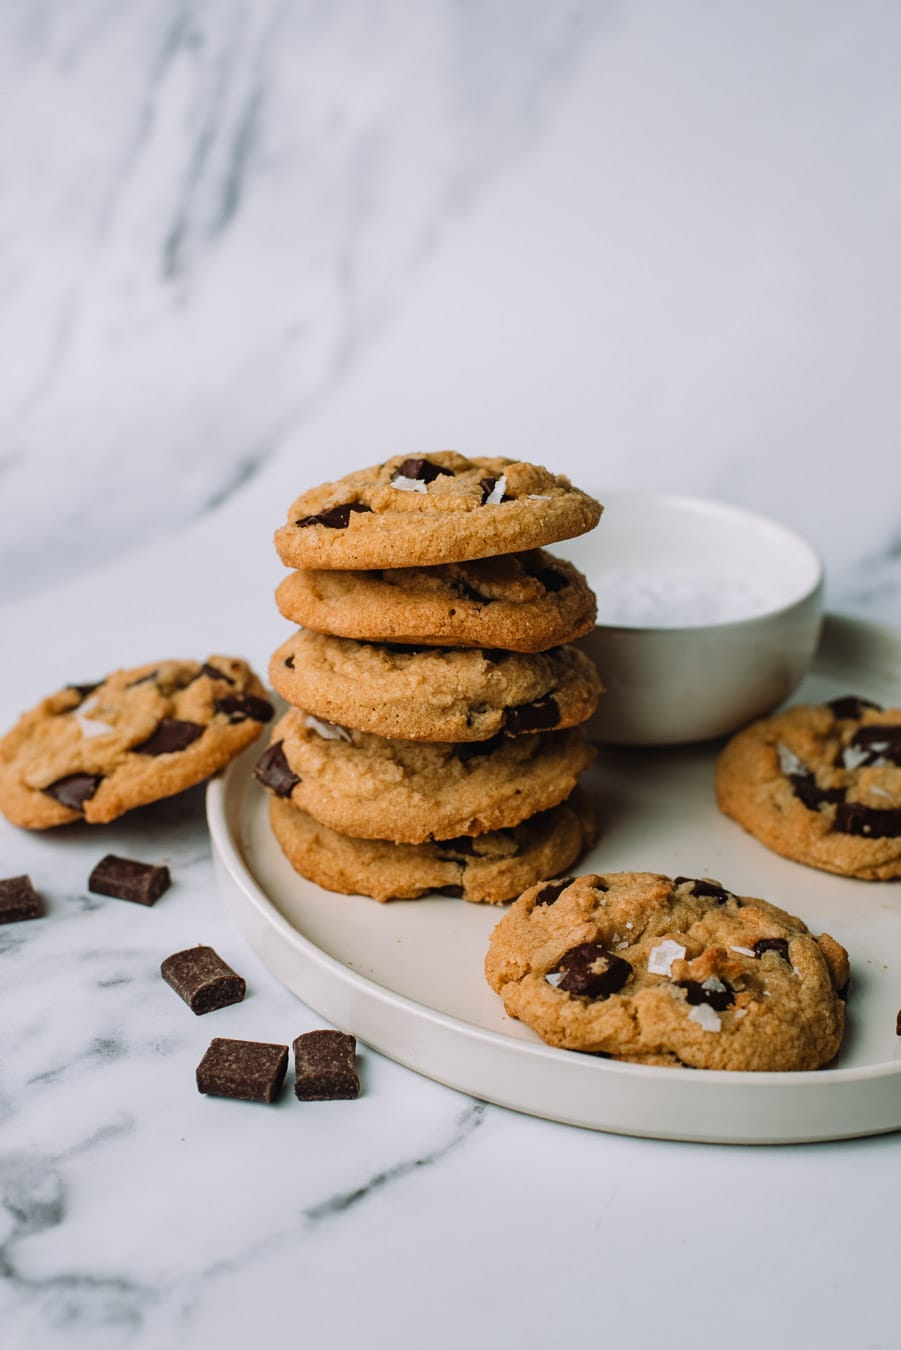 Olive Oil Chocolate Chip Cookies stacked on top of each other on a white plate with extra chocolate morsels.